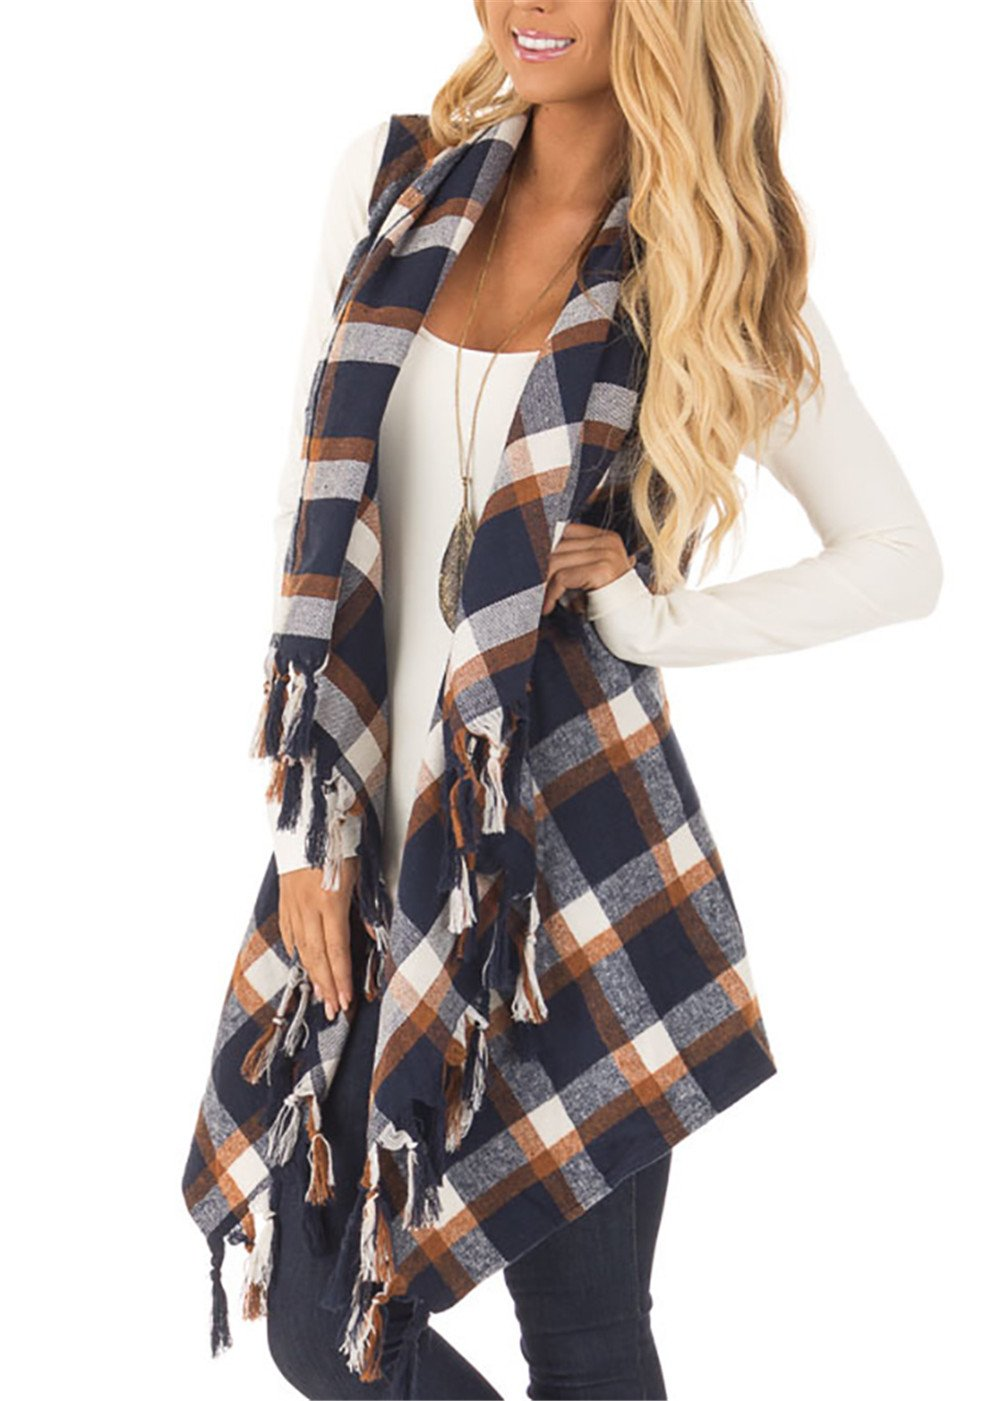 Yobecho Women's Cardigan Vests Plaid High Low Sleeveless Open Front Draped Blouses Cardigan (M, Navy and Coffee)